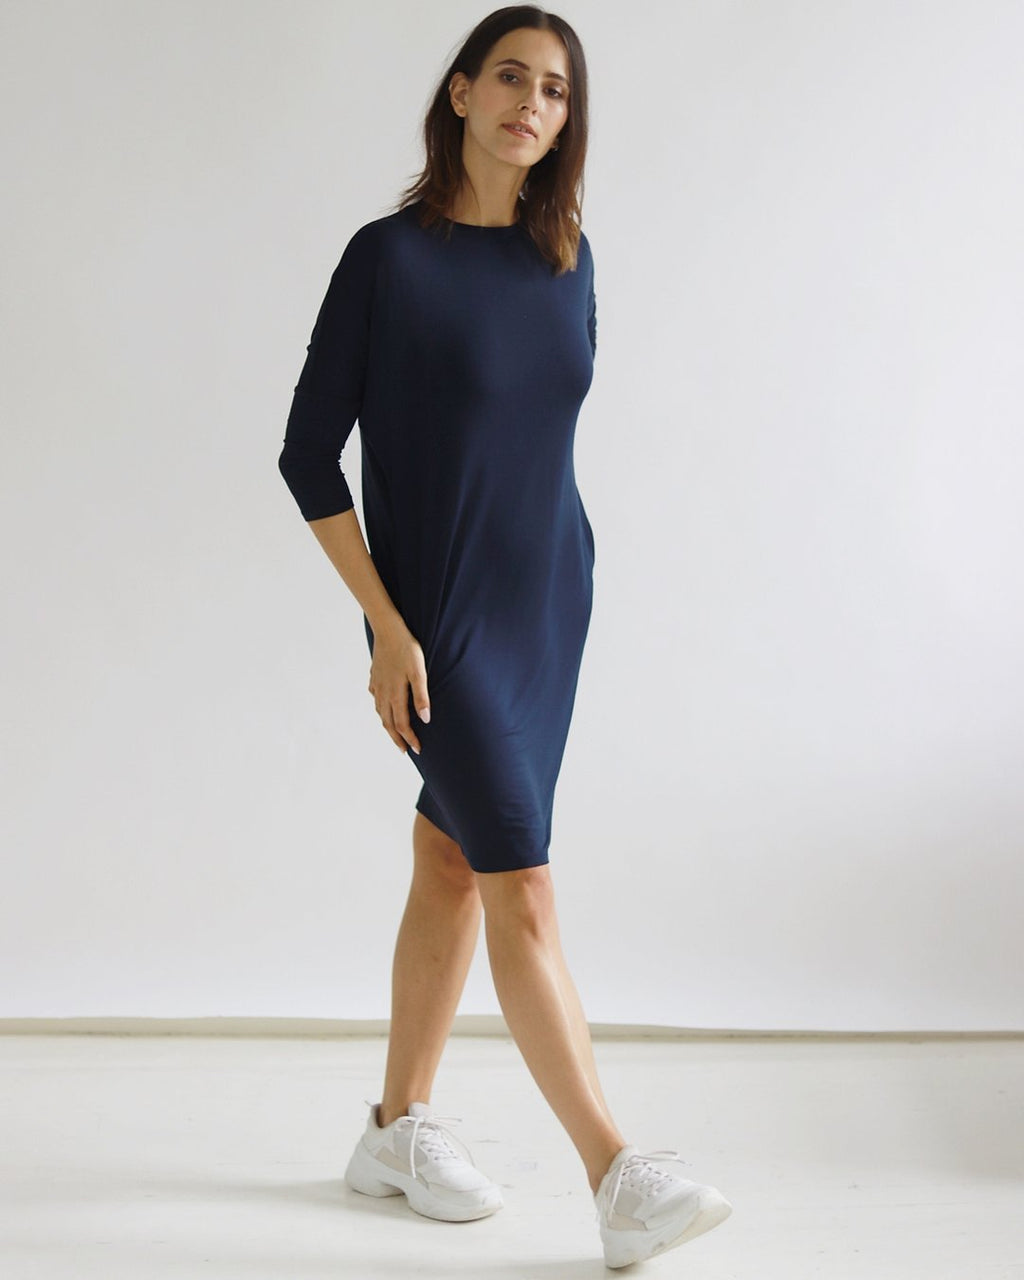 Yaffa Navy Dress - Sarah Feldman Modest Clothing